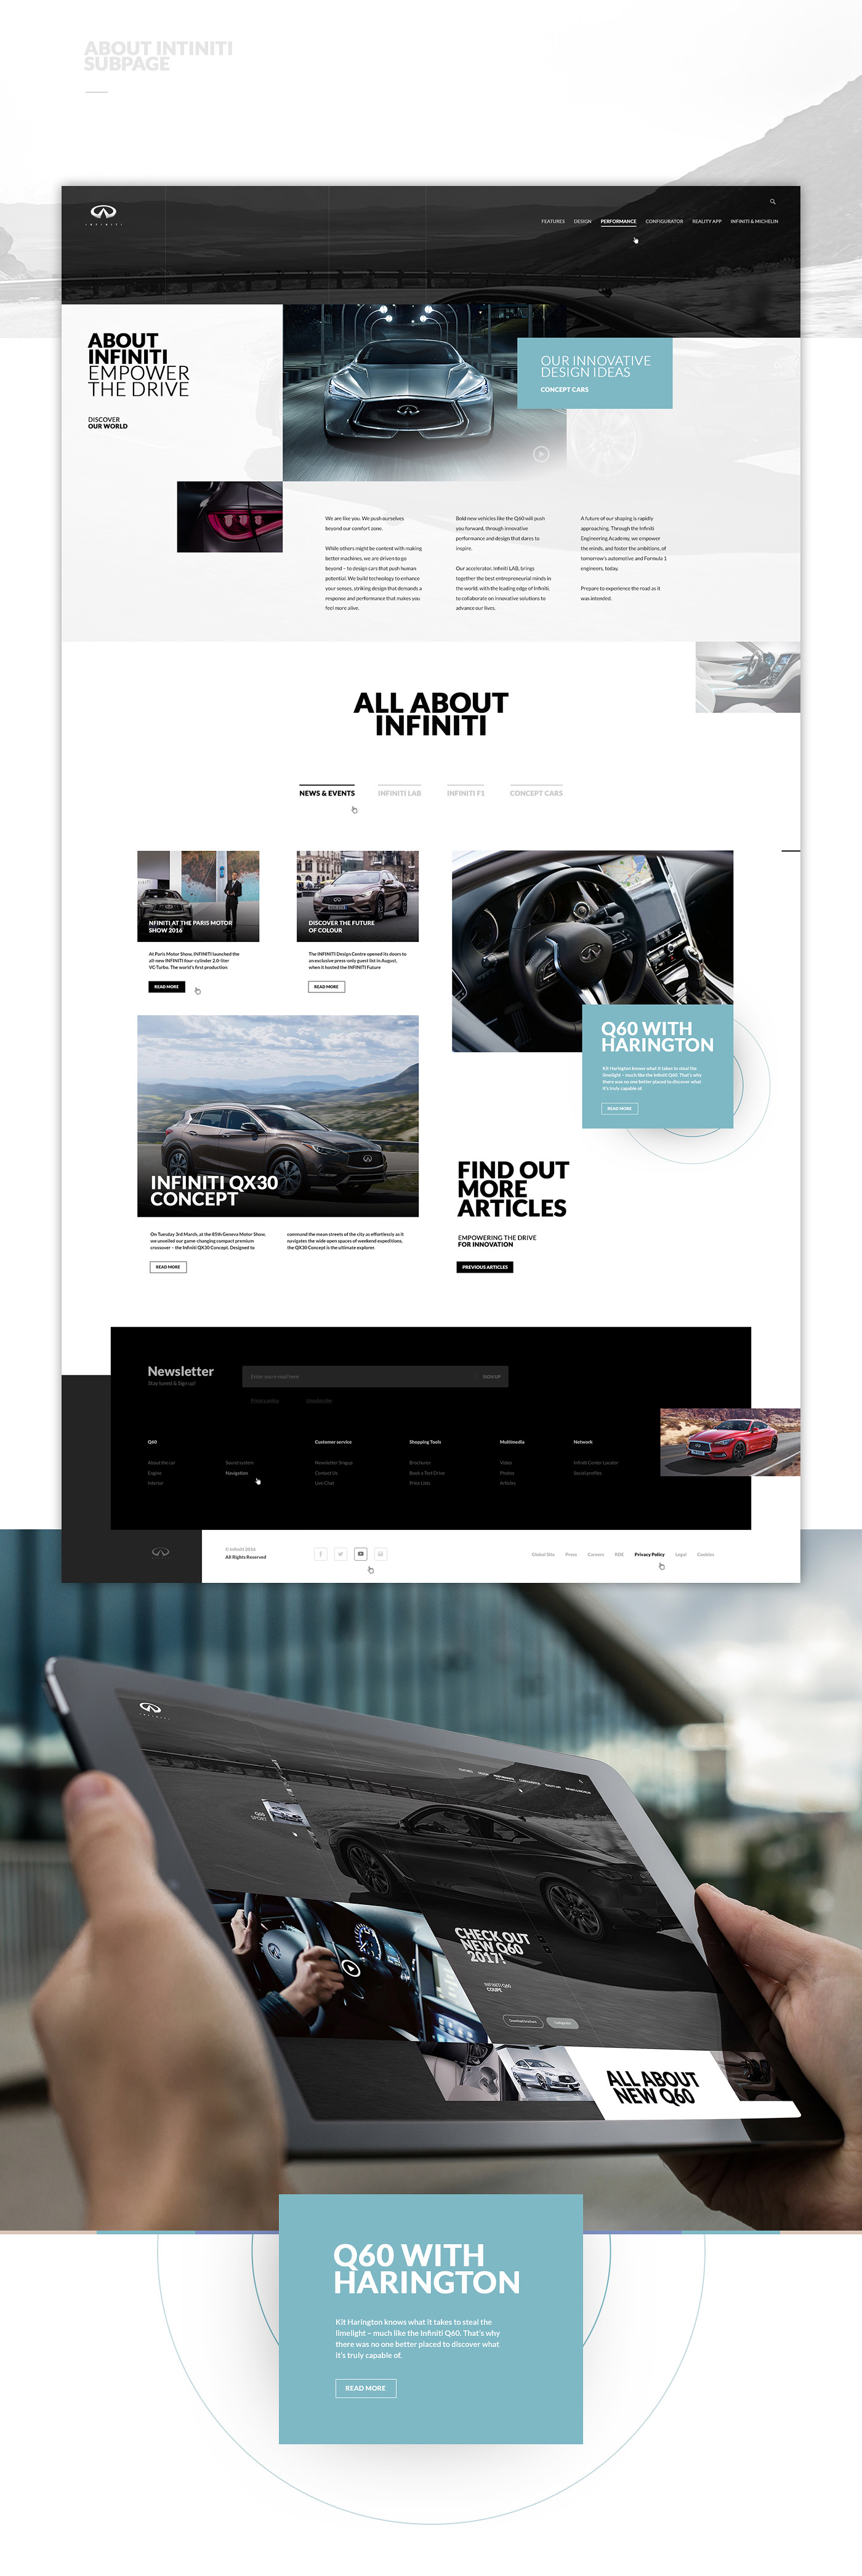 Cars infiniti q60 Website grid onepage Project vehicles Auto automobile